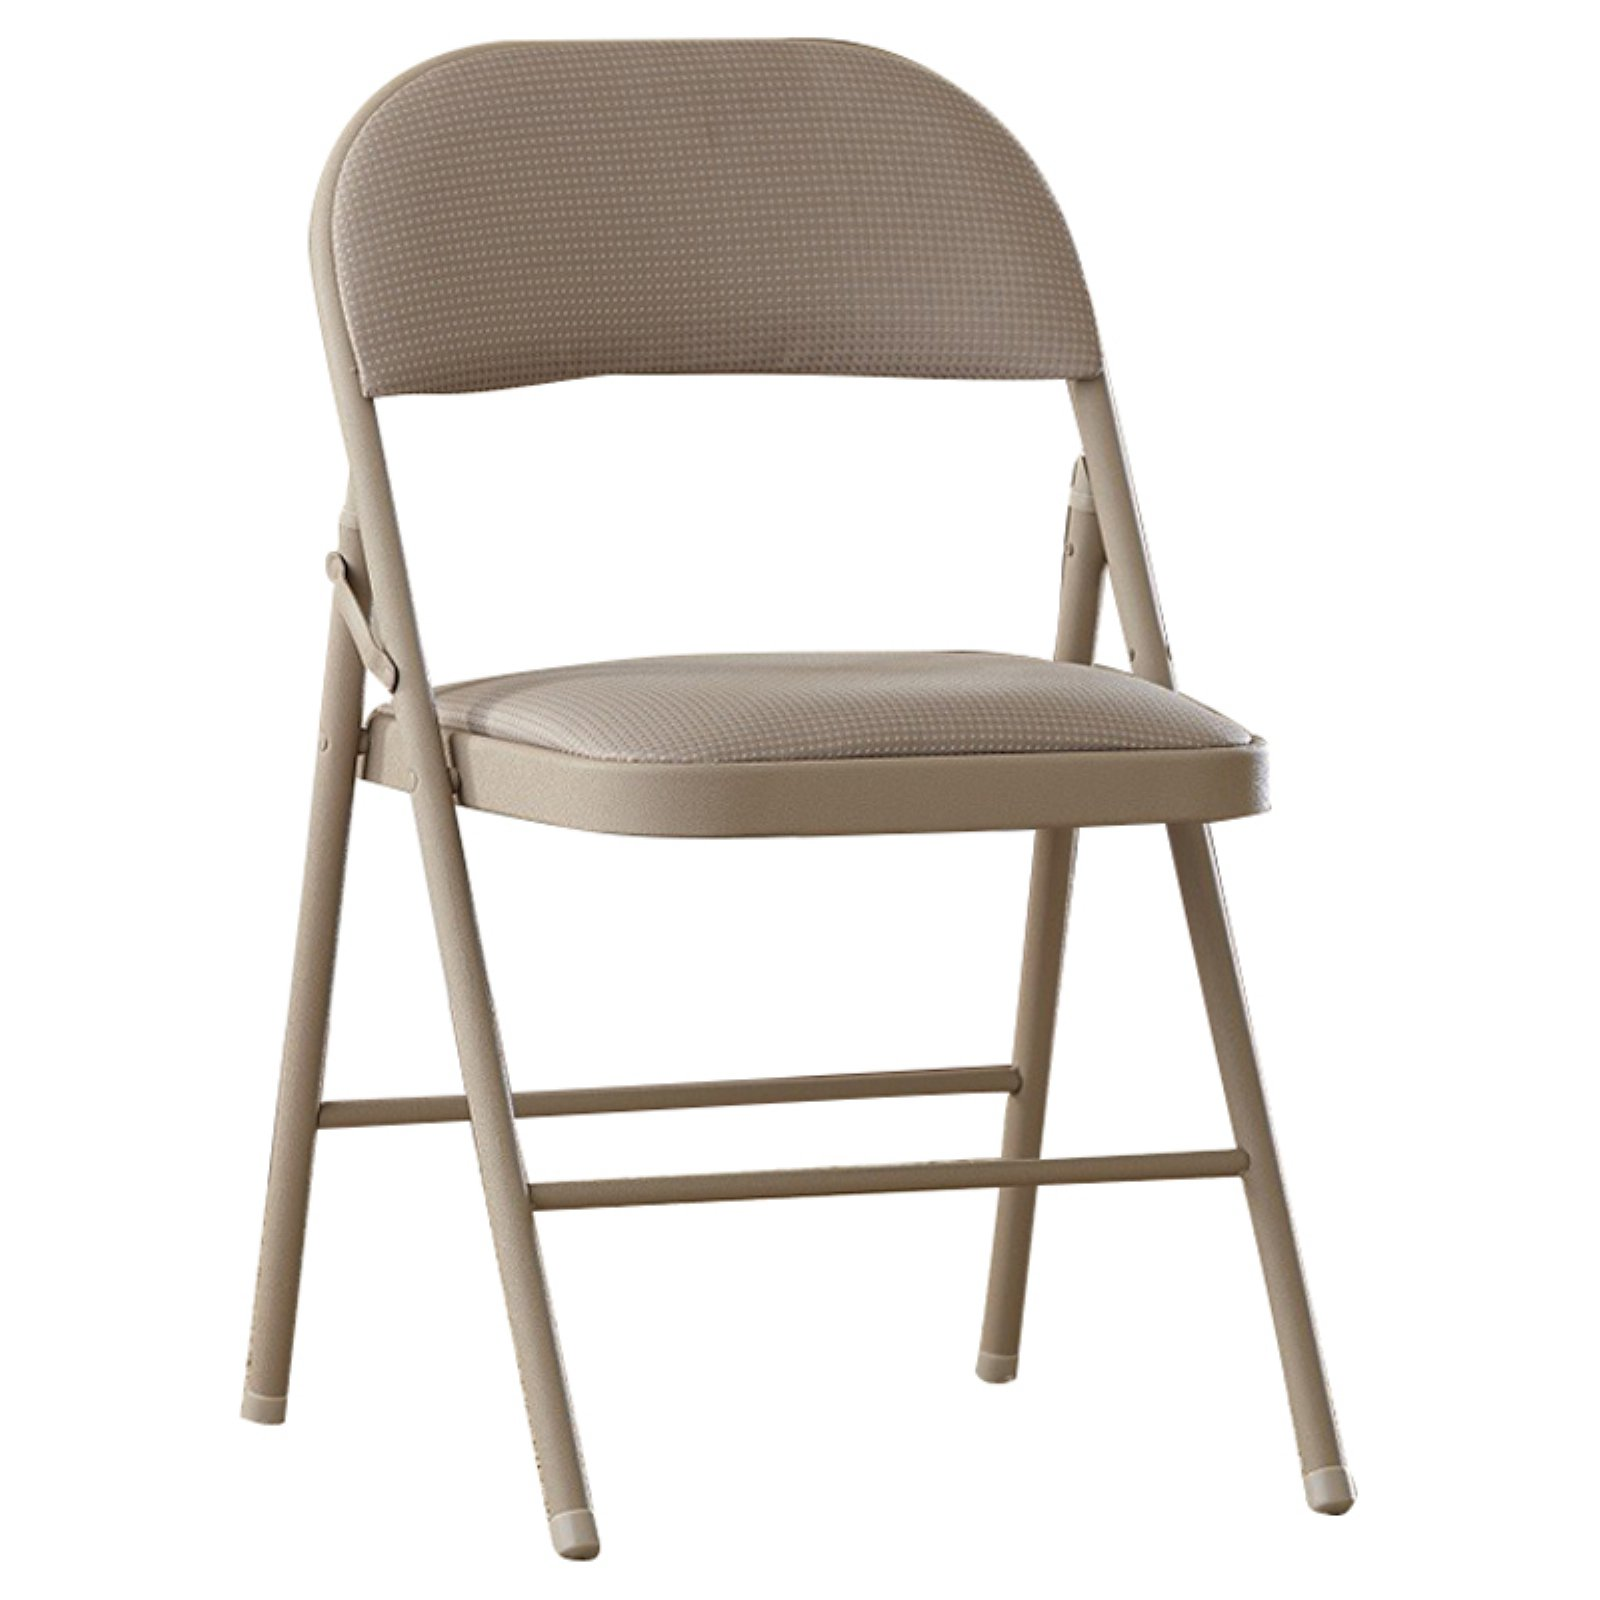 Cosco Deluxe Folding Chair Set of 4 Walmart